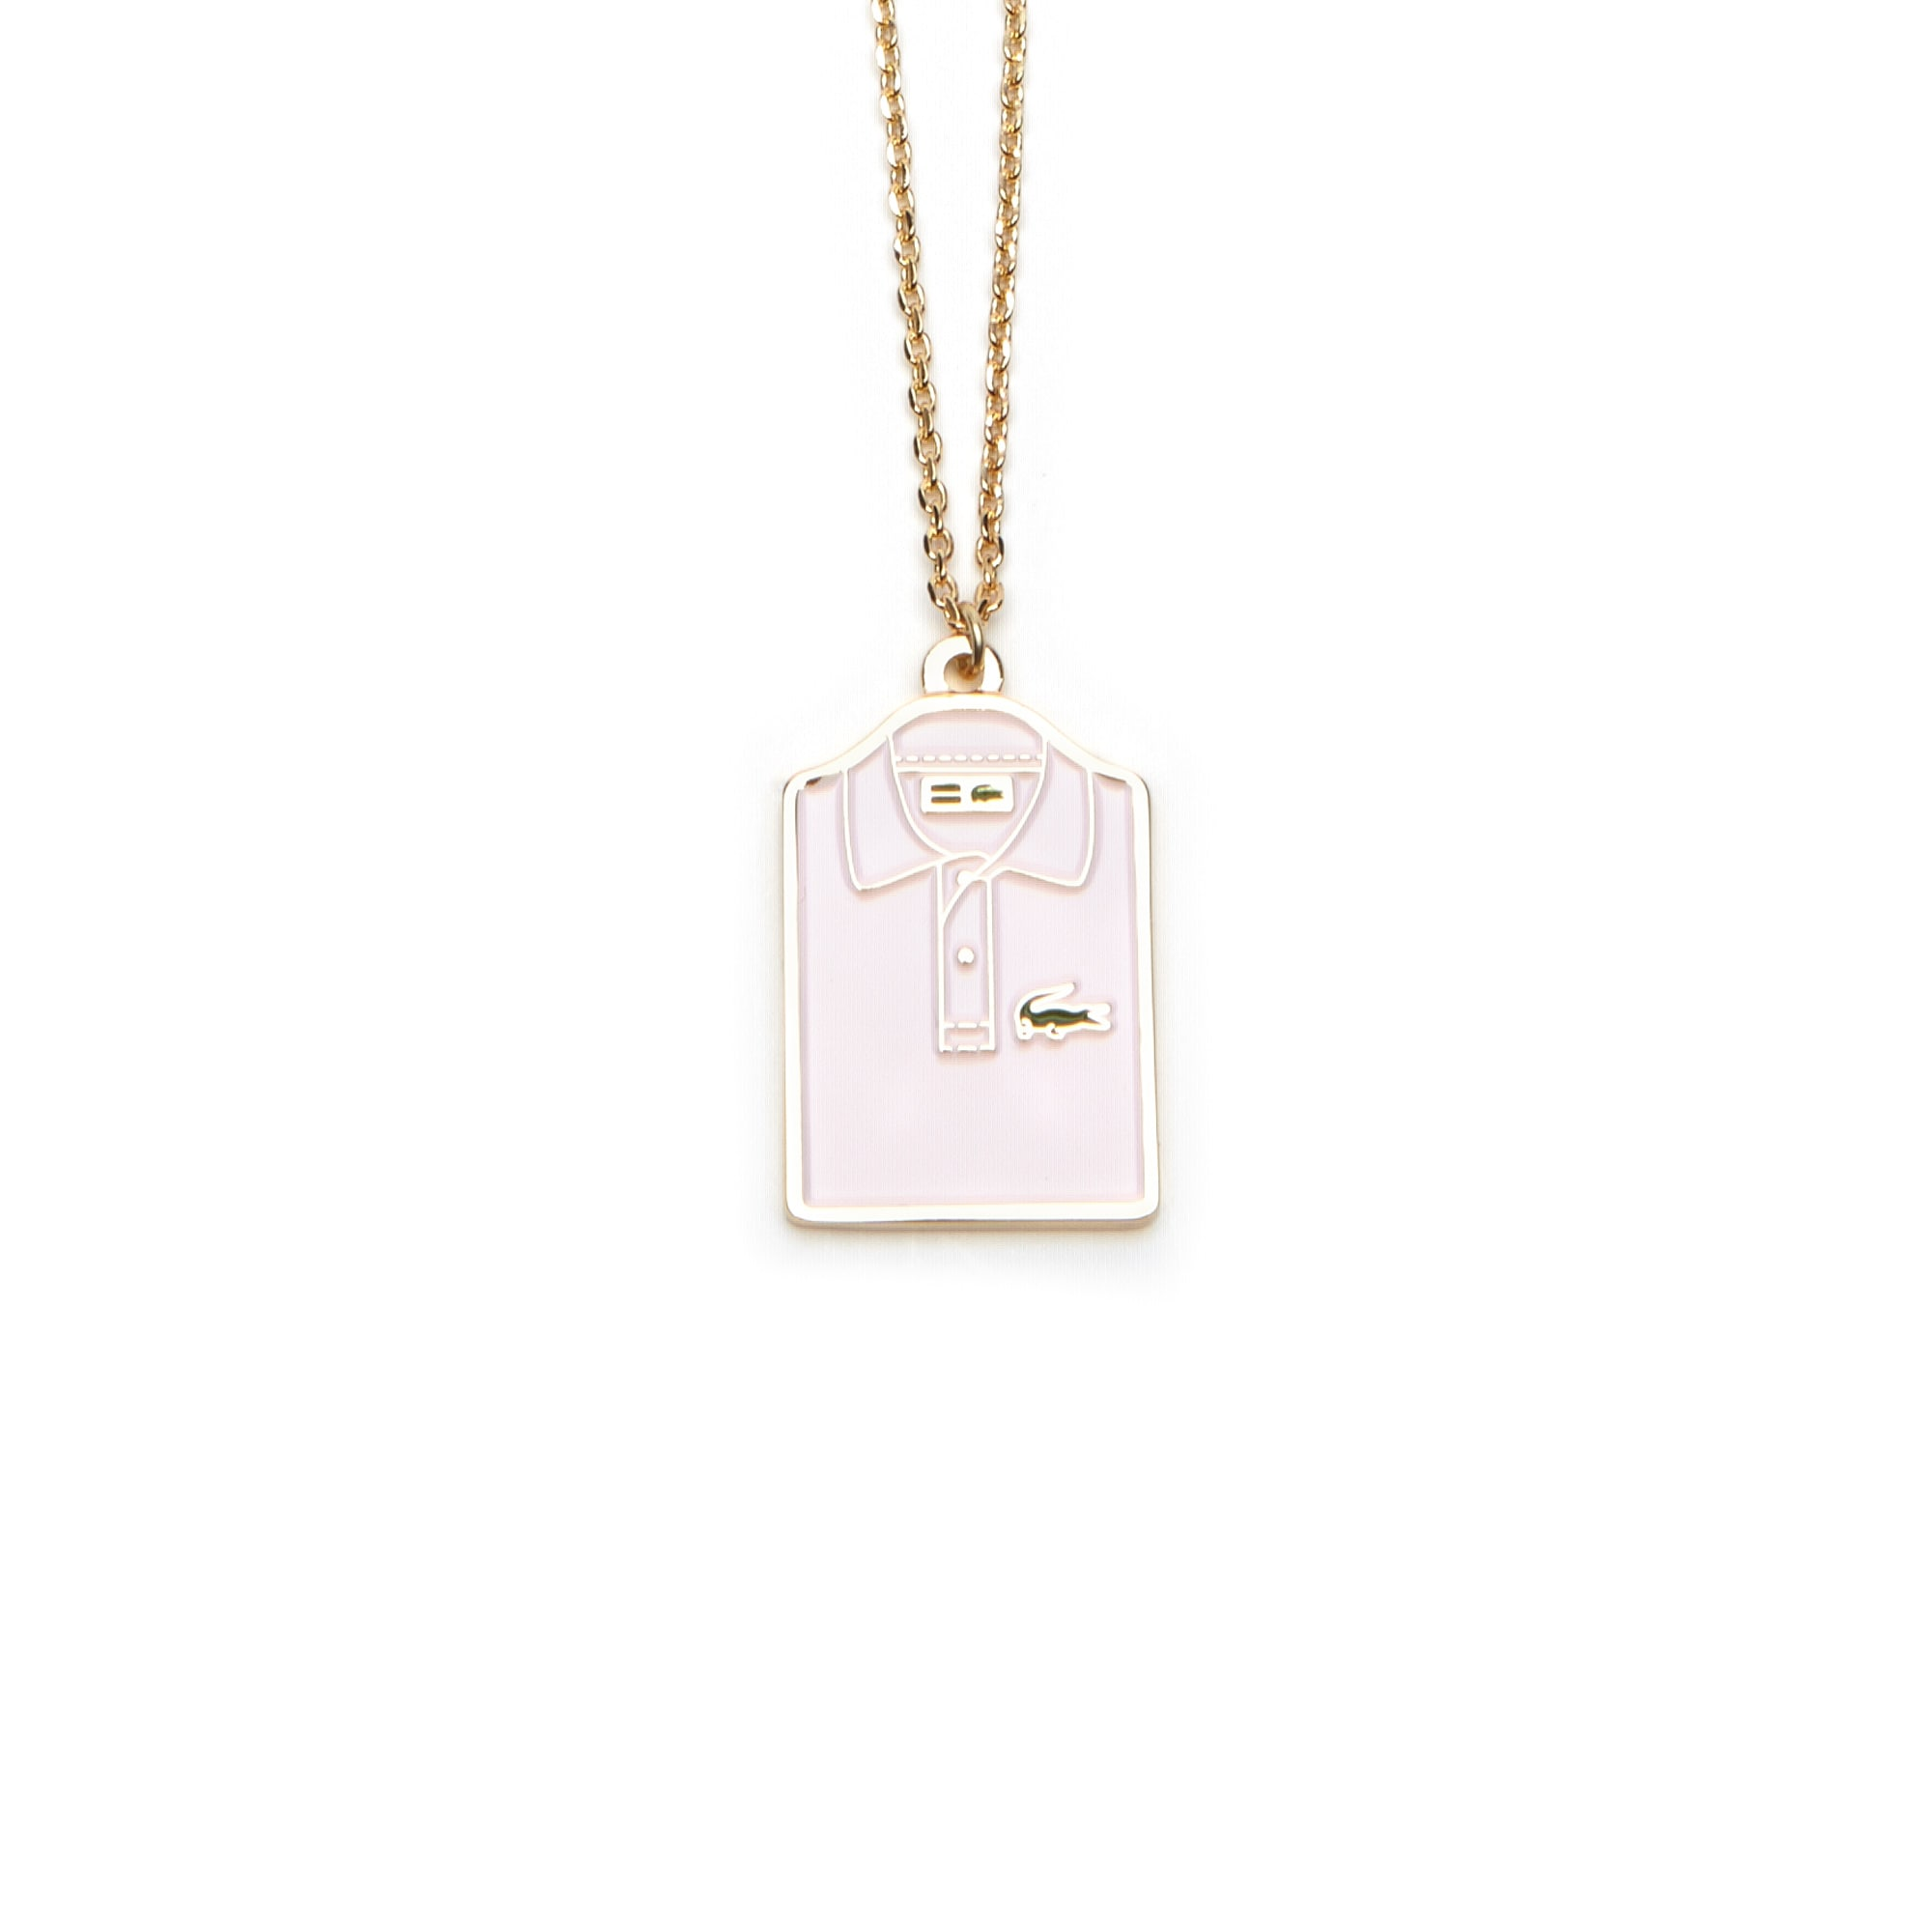 Lacoste Polo Fashion Show Necklace